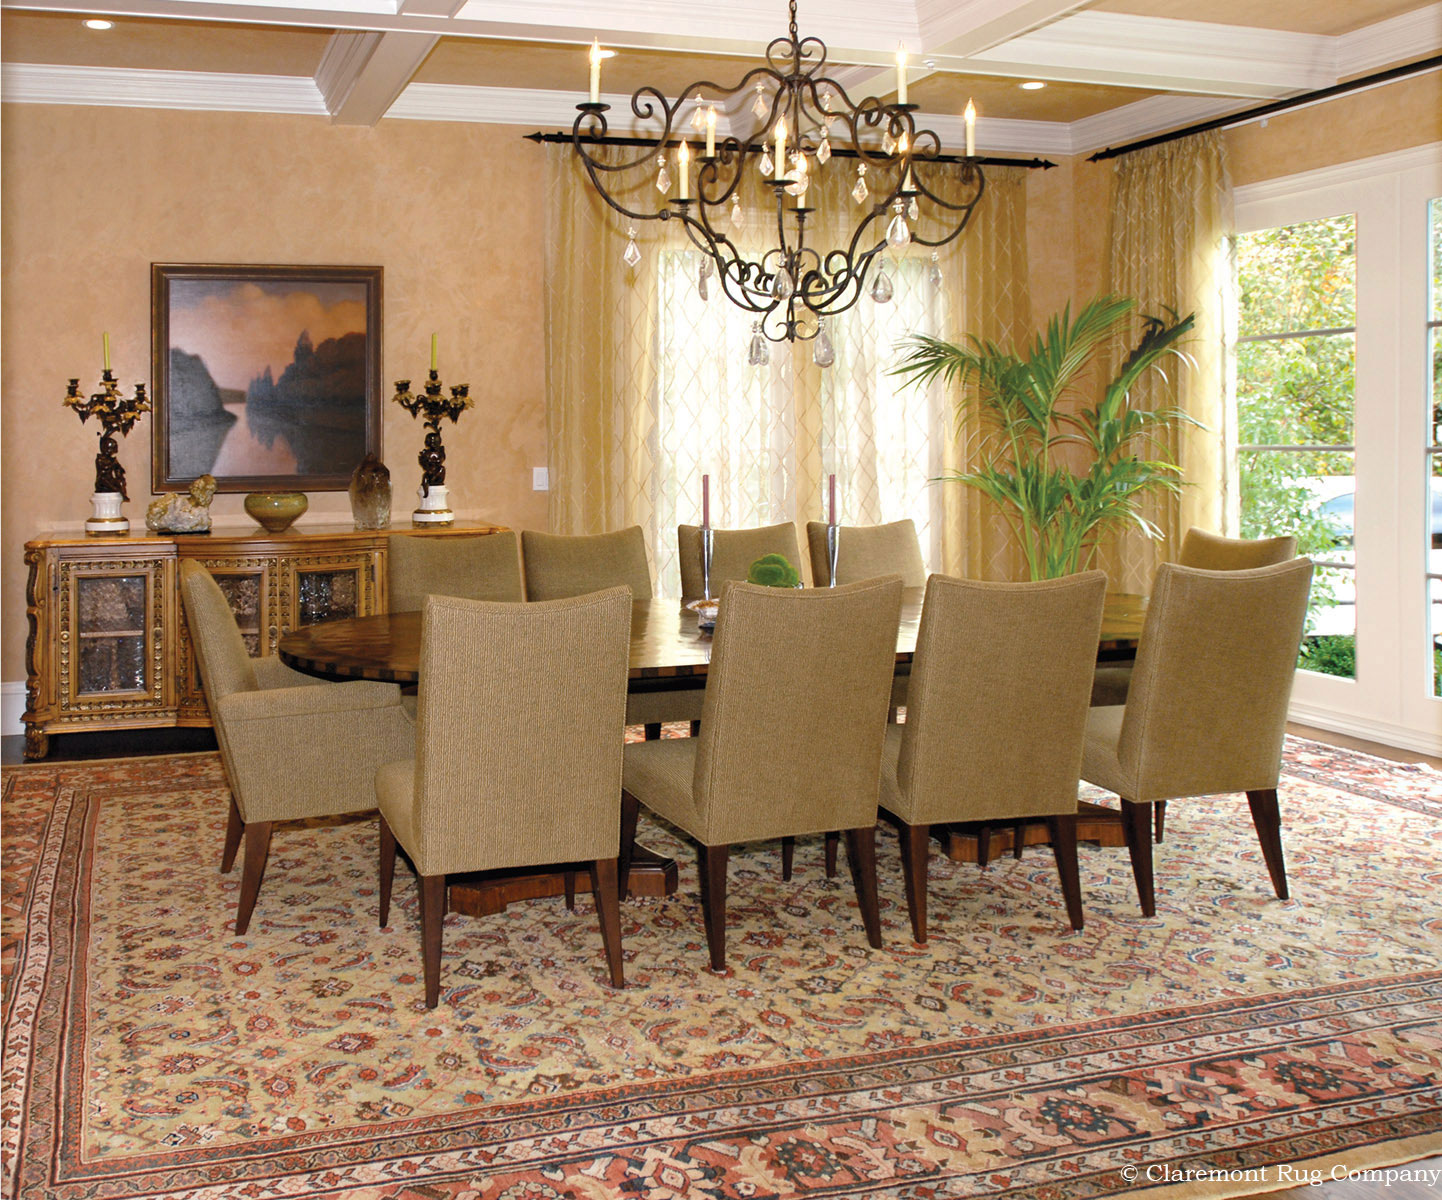 antique persian sultanabad rug in decor in dining room. Black Bedroom Furniture Sets. Home Design Ideas